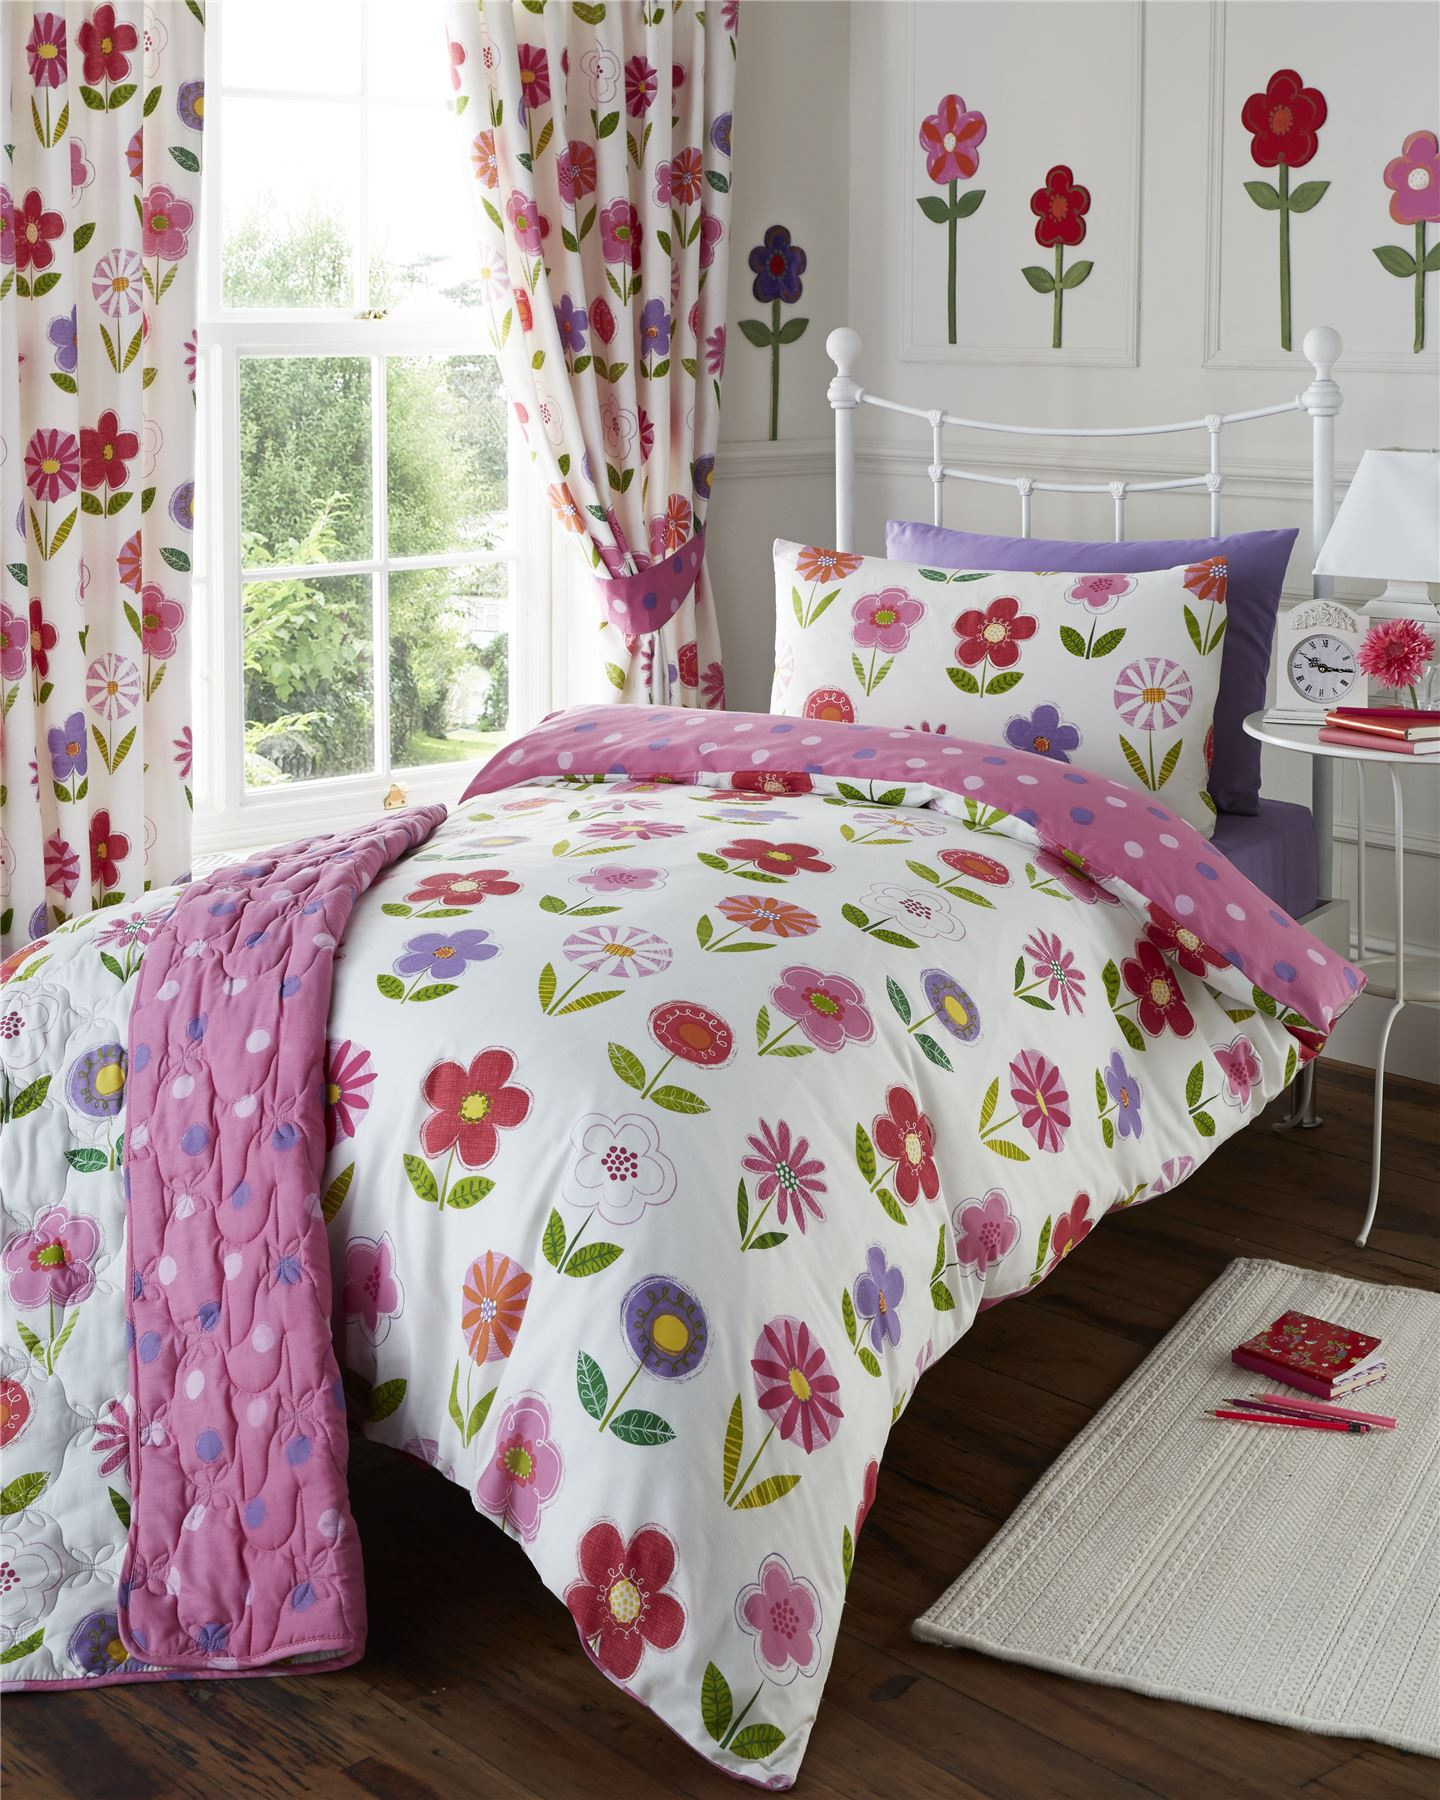 Curtains for Kids Bunk Beds & Loft Beds. Cute colors & themes for boys & girls. Removable as children grow.